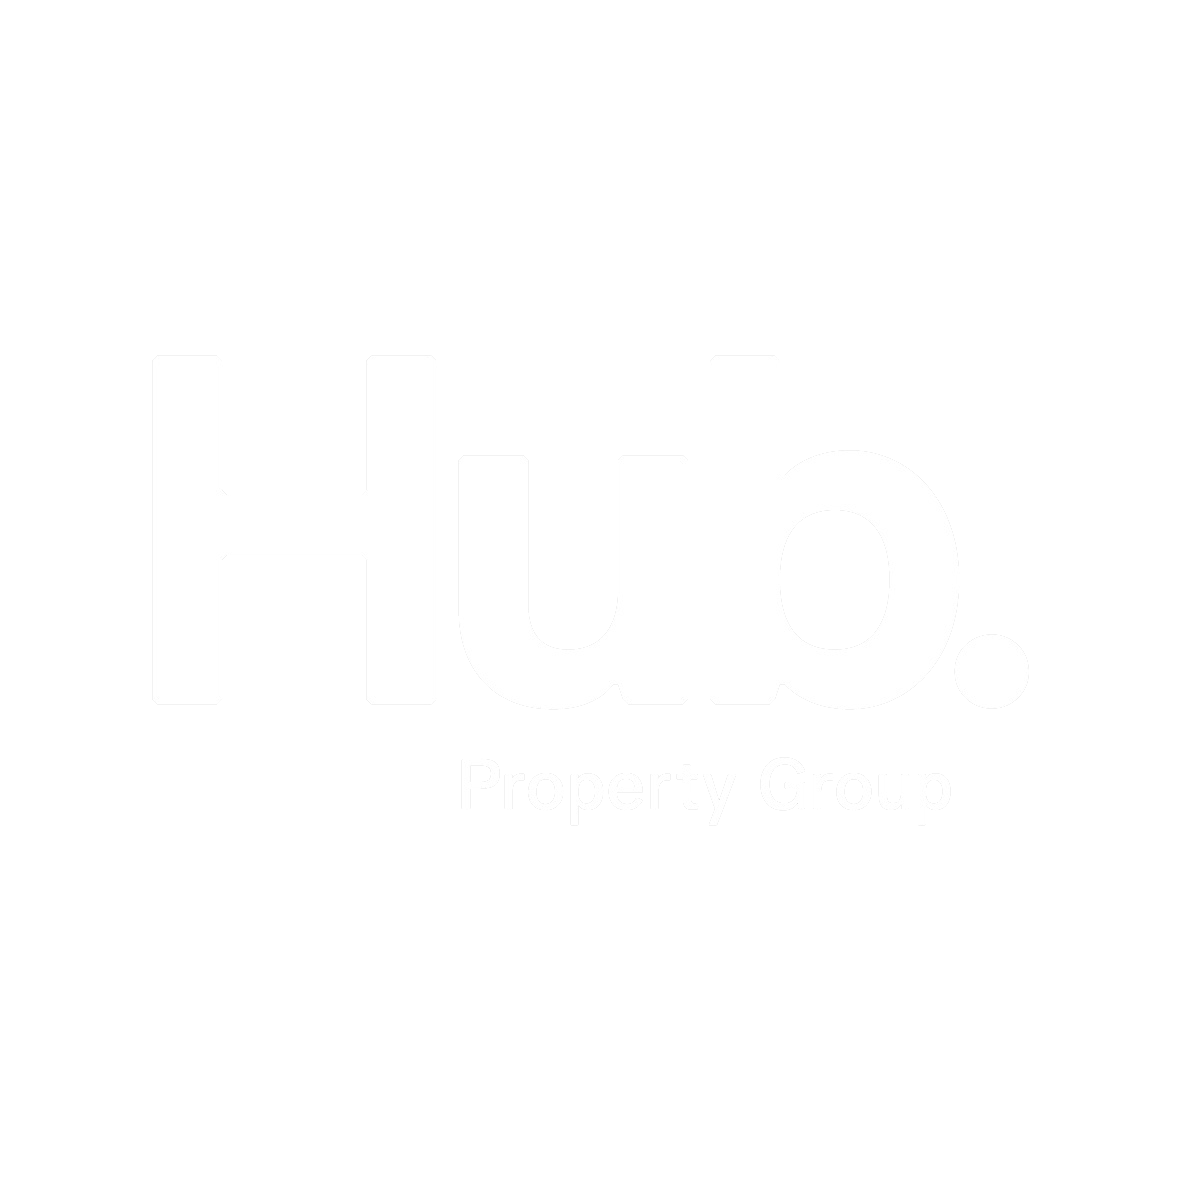 Hub Property Group